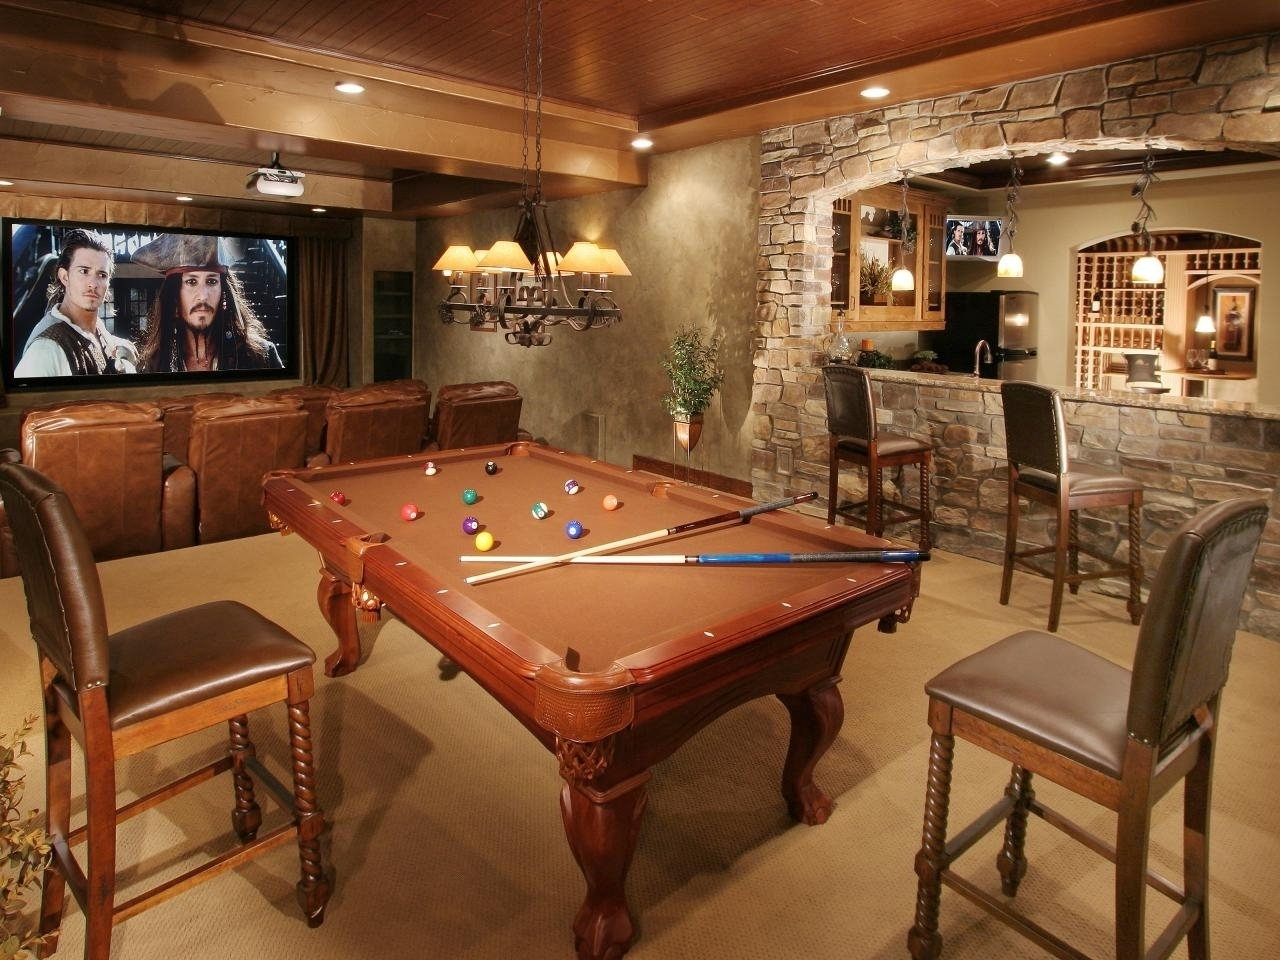 10 Amazing Man Cave Ideas For Basement %name